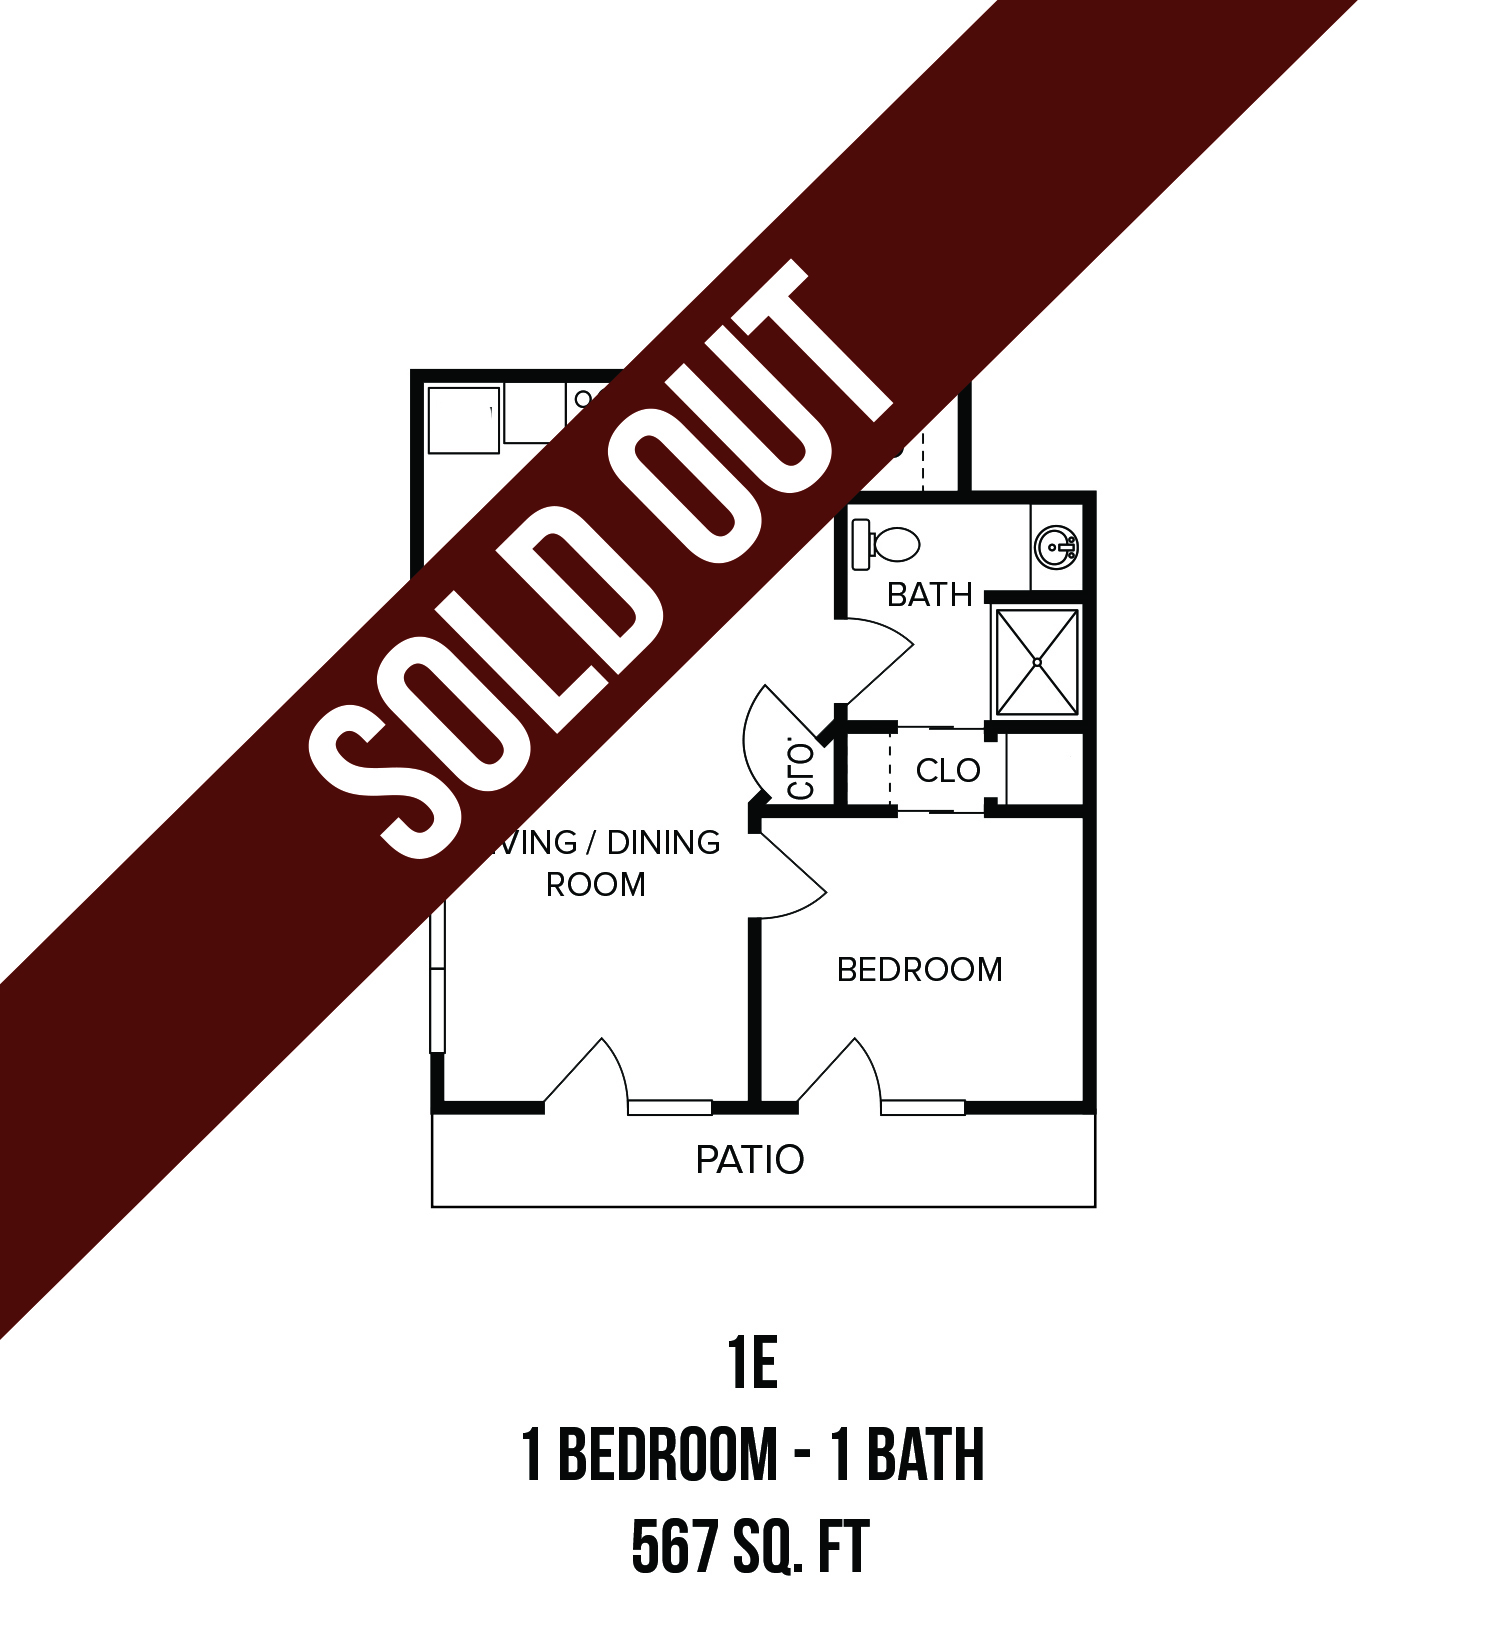 Floorplan - One Bedroom (1E) image